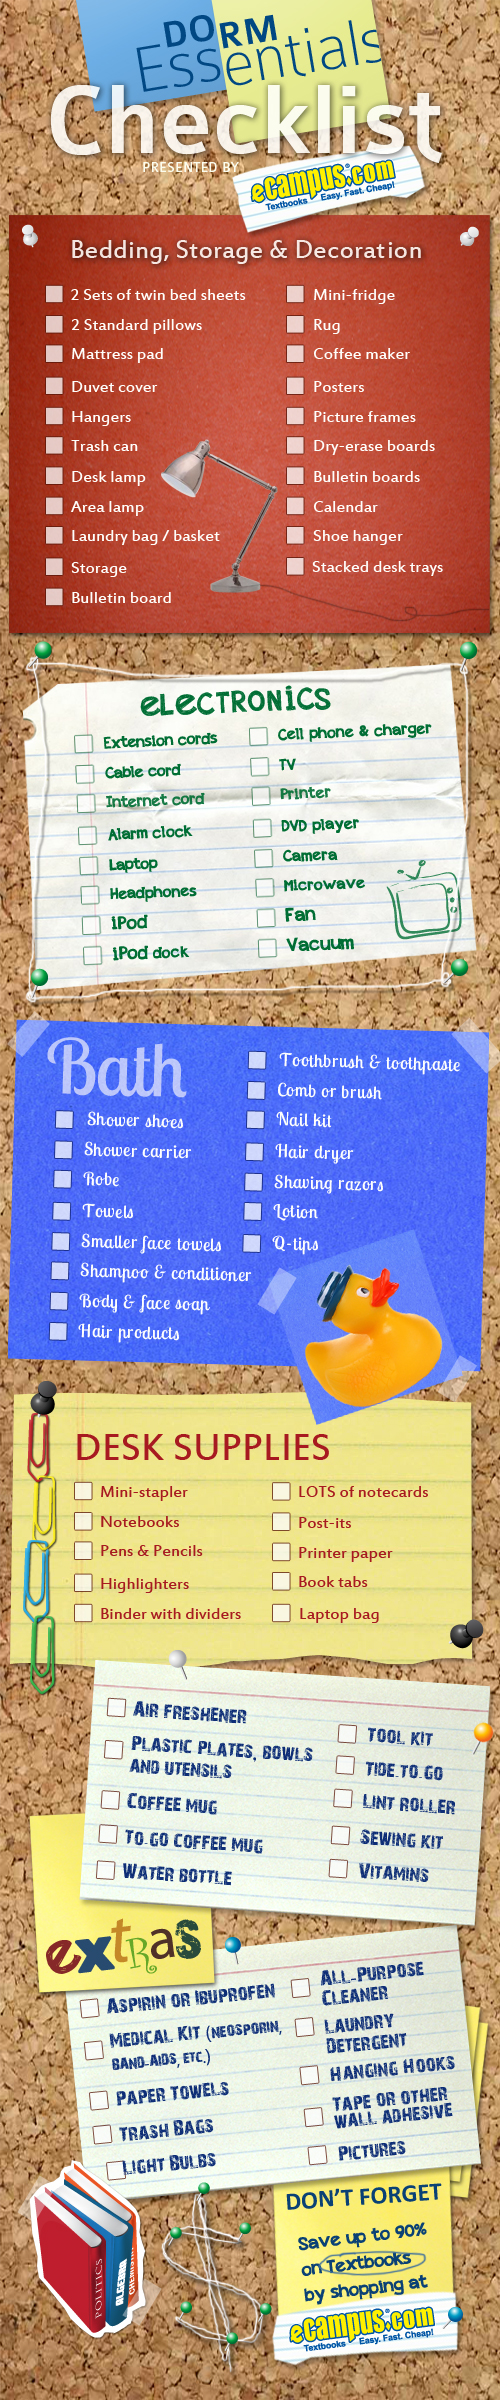 Dorm Room Checklist